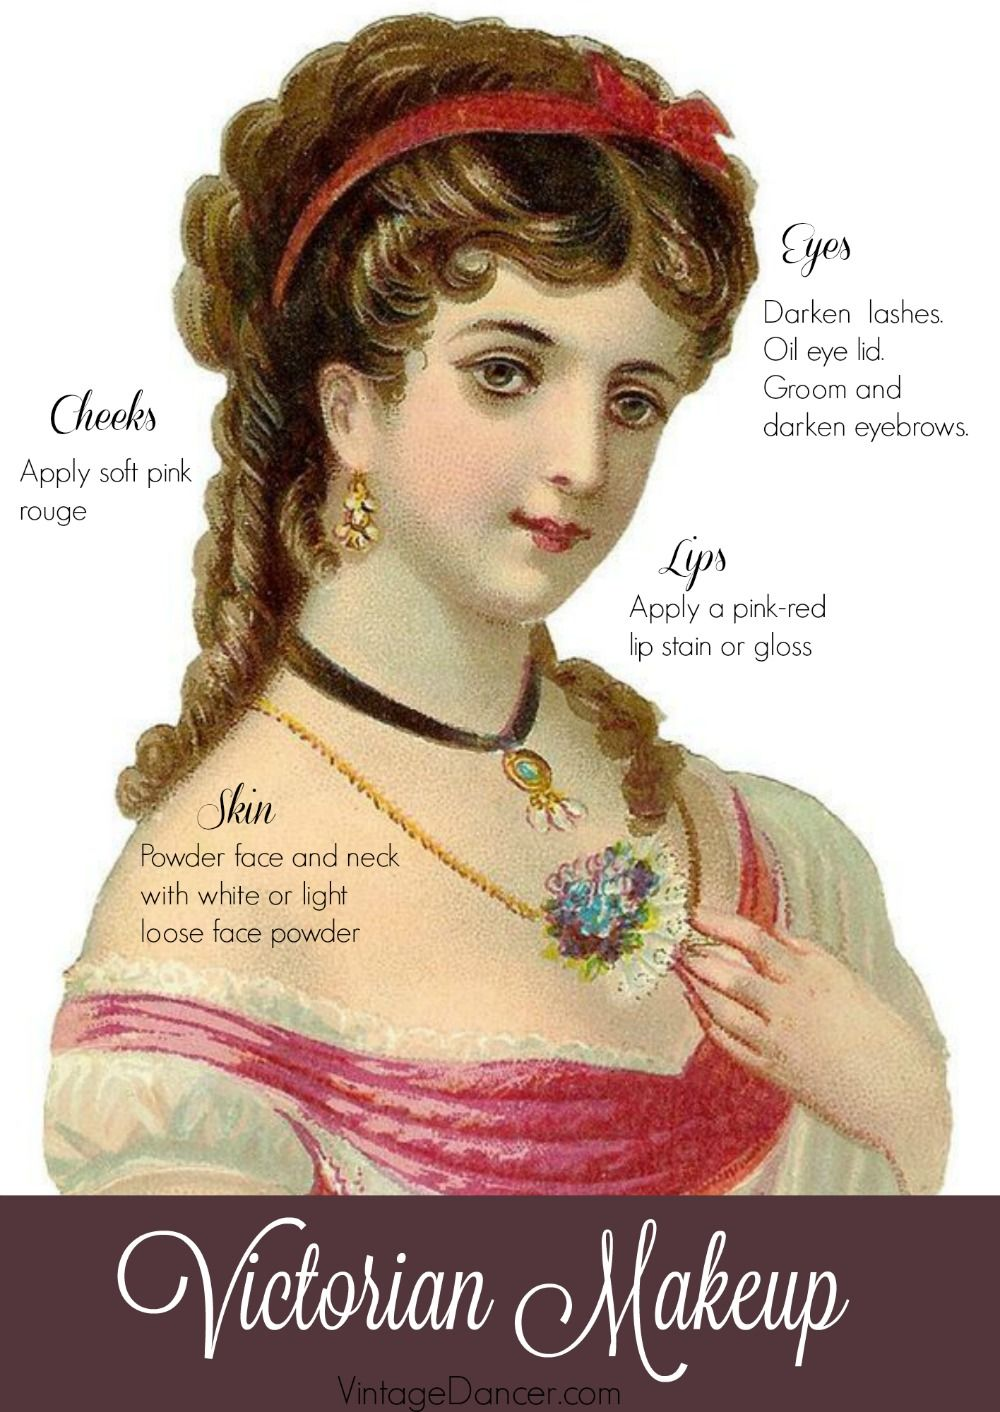 The history of Victorian makeup plus a Victorian makeup